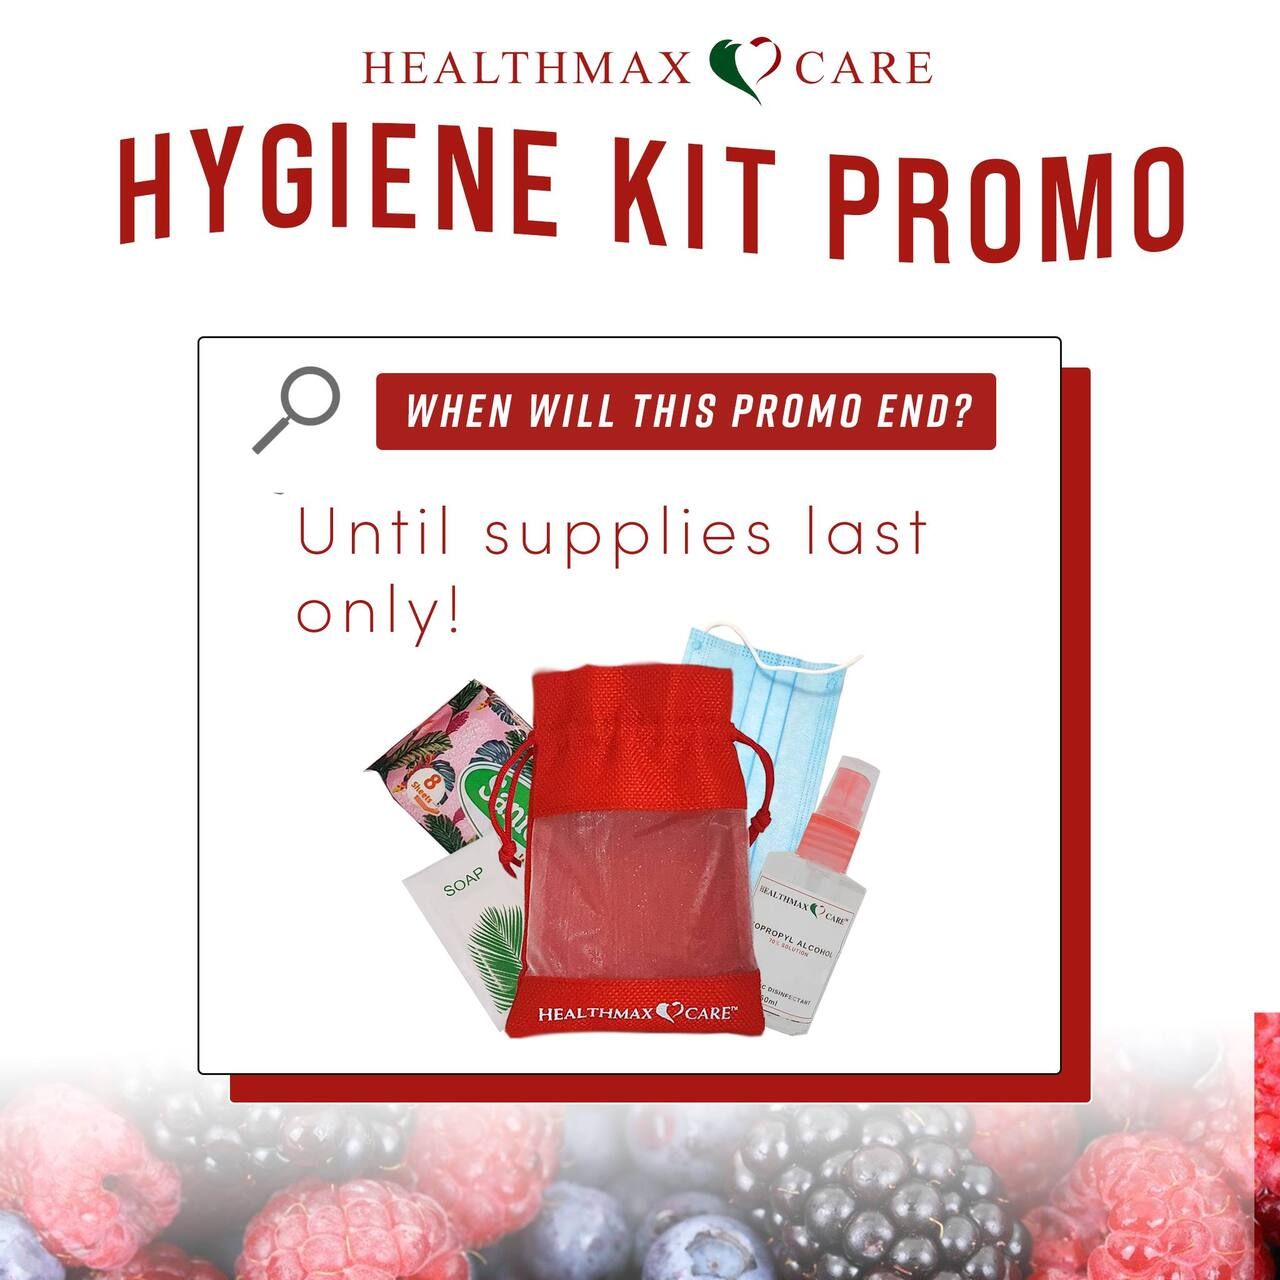 Healthmax Care Hygiene Kit Promo Duration